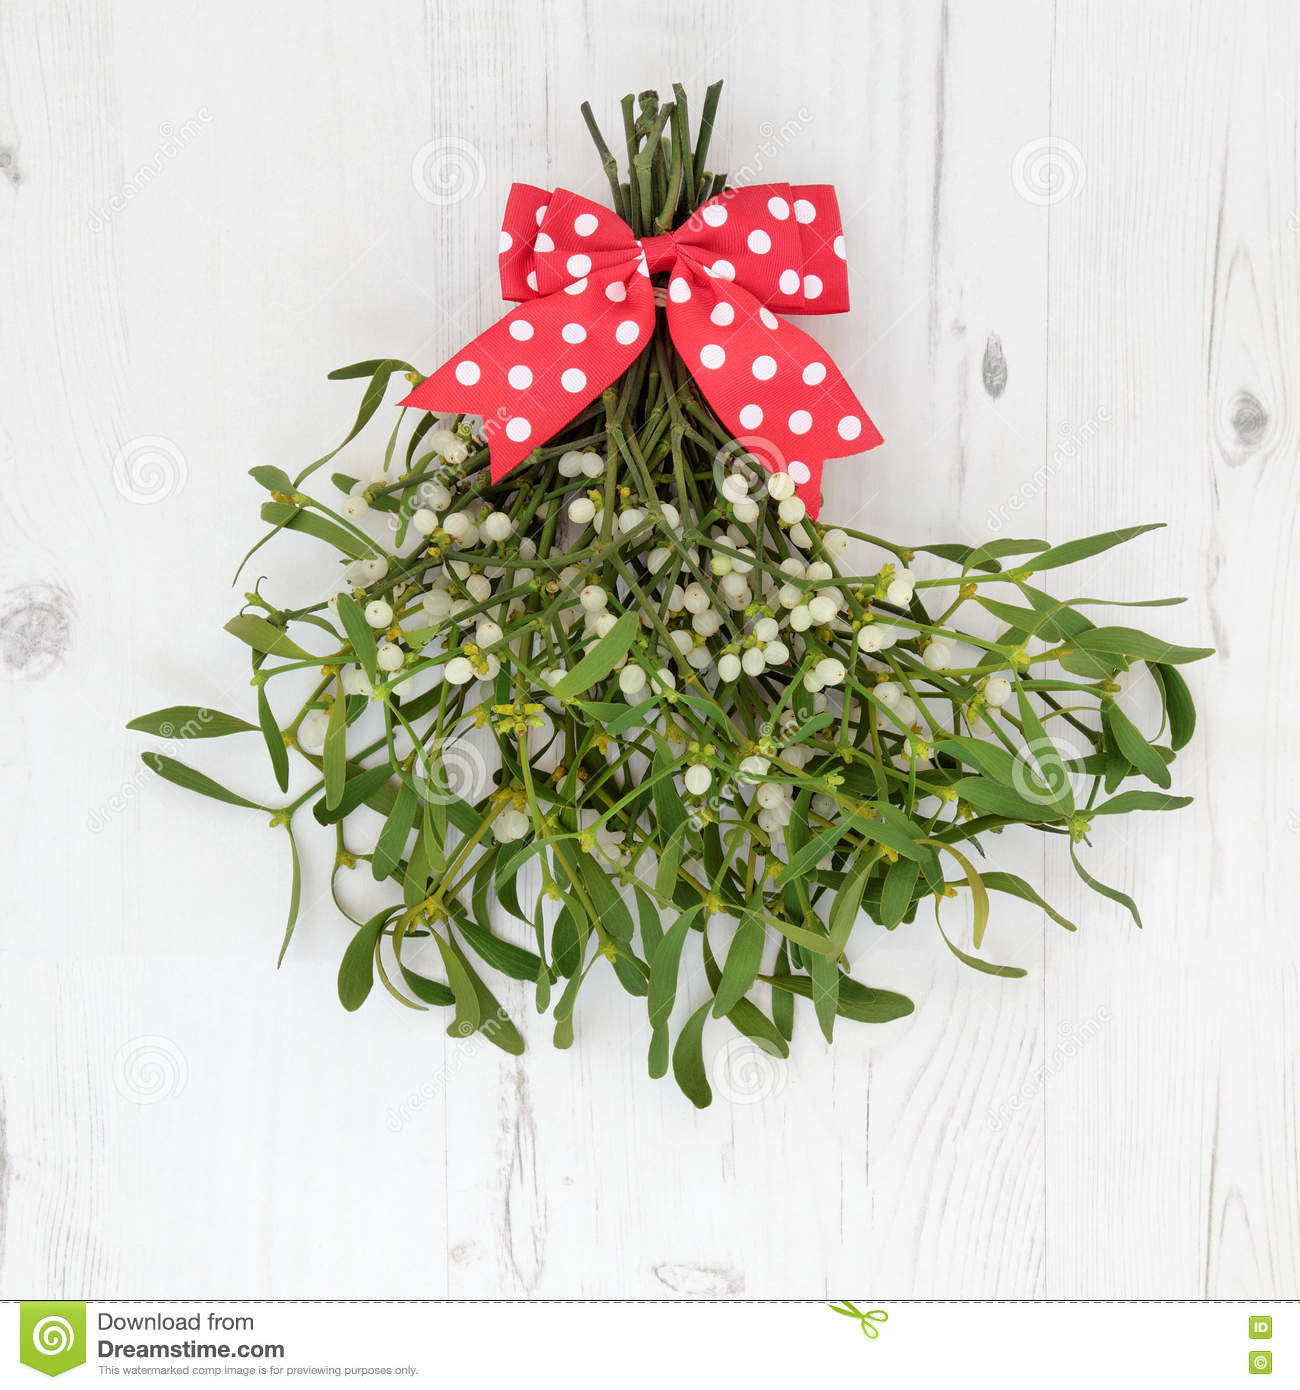 christmas mistletoe decoration - Mistletoe Christmas Decoration